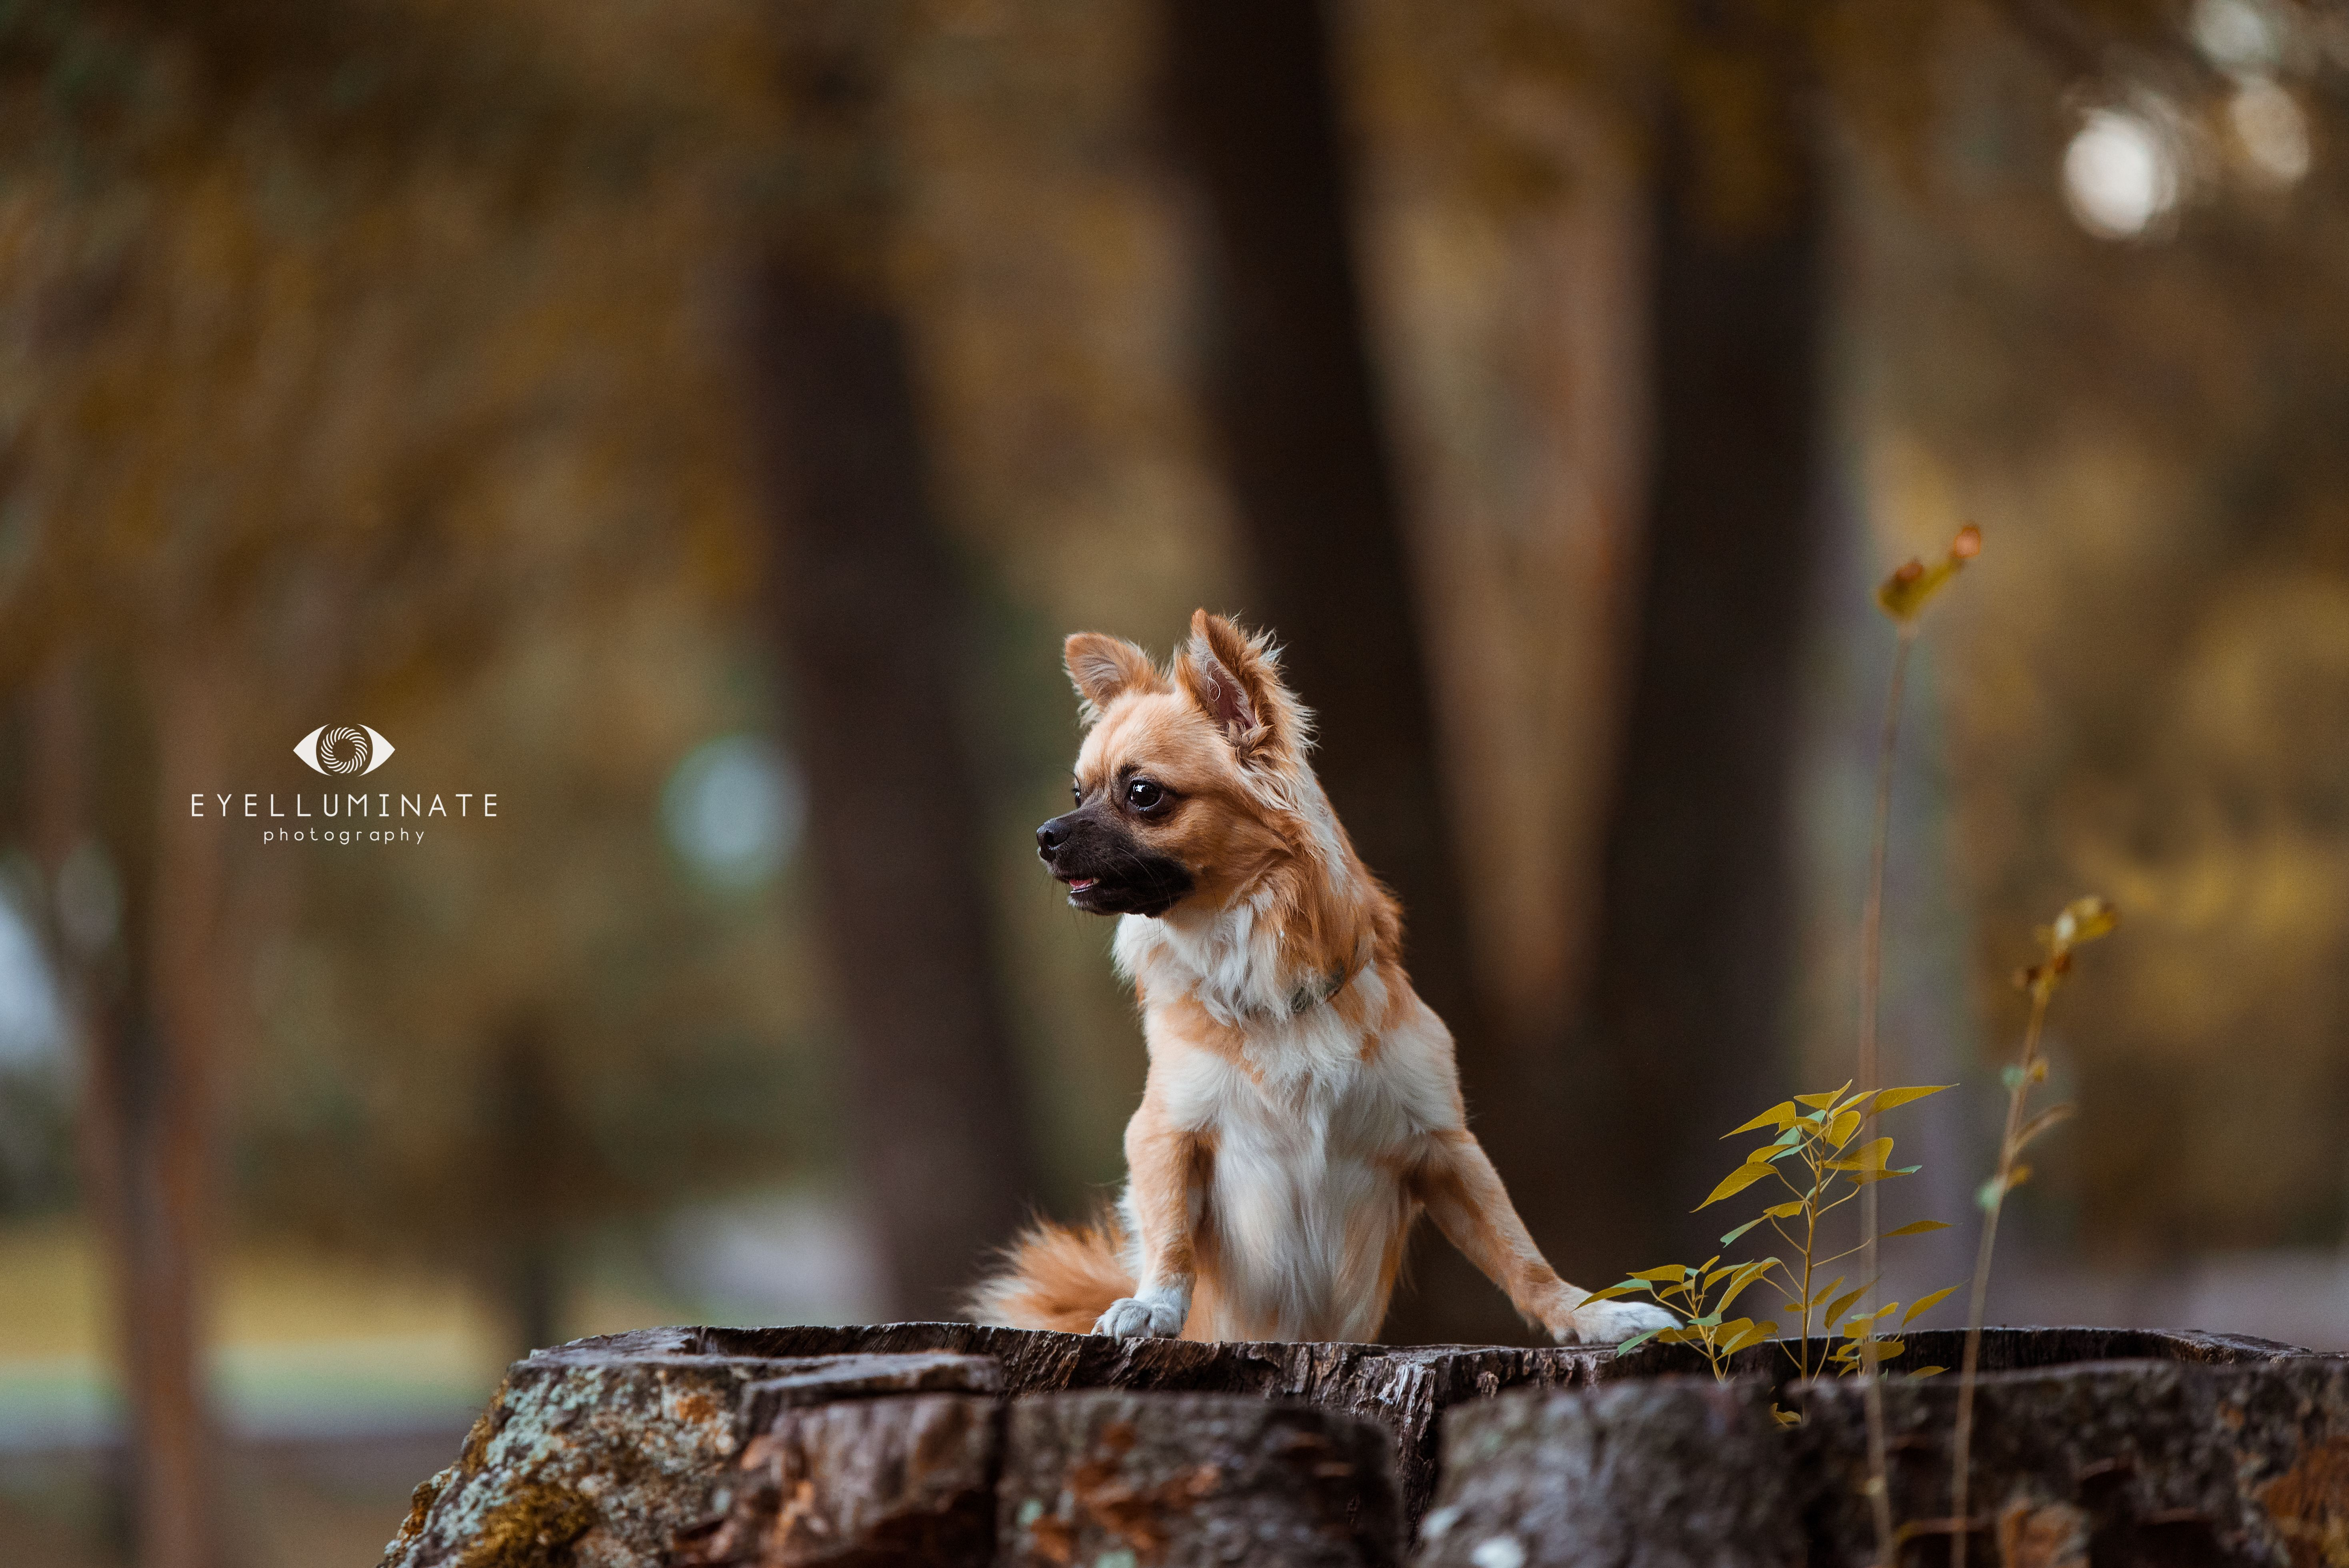 Professional Photo Of Puppy Standing On Tree Stump In October Pet